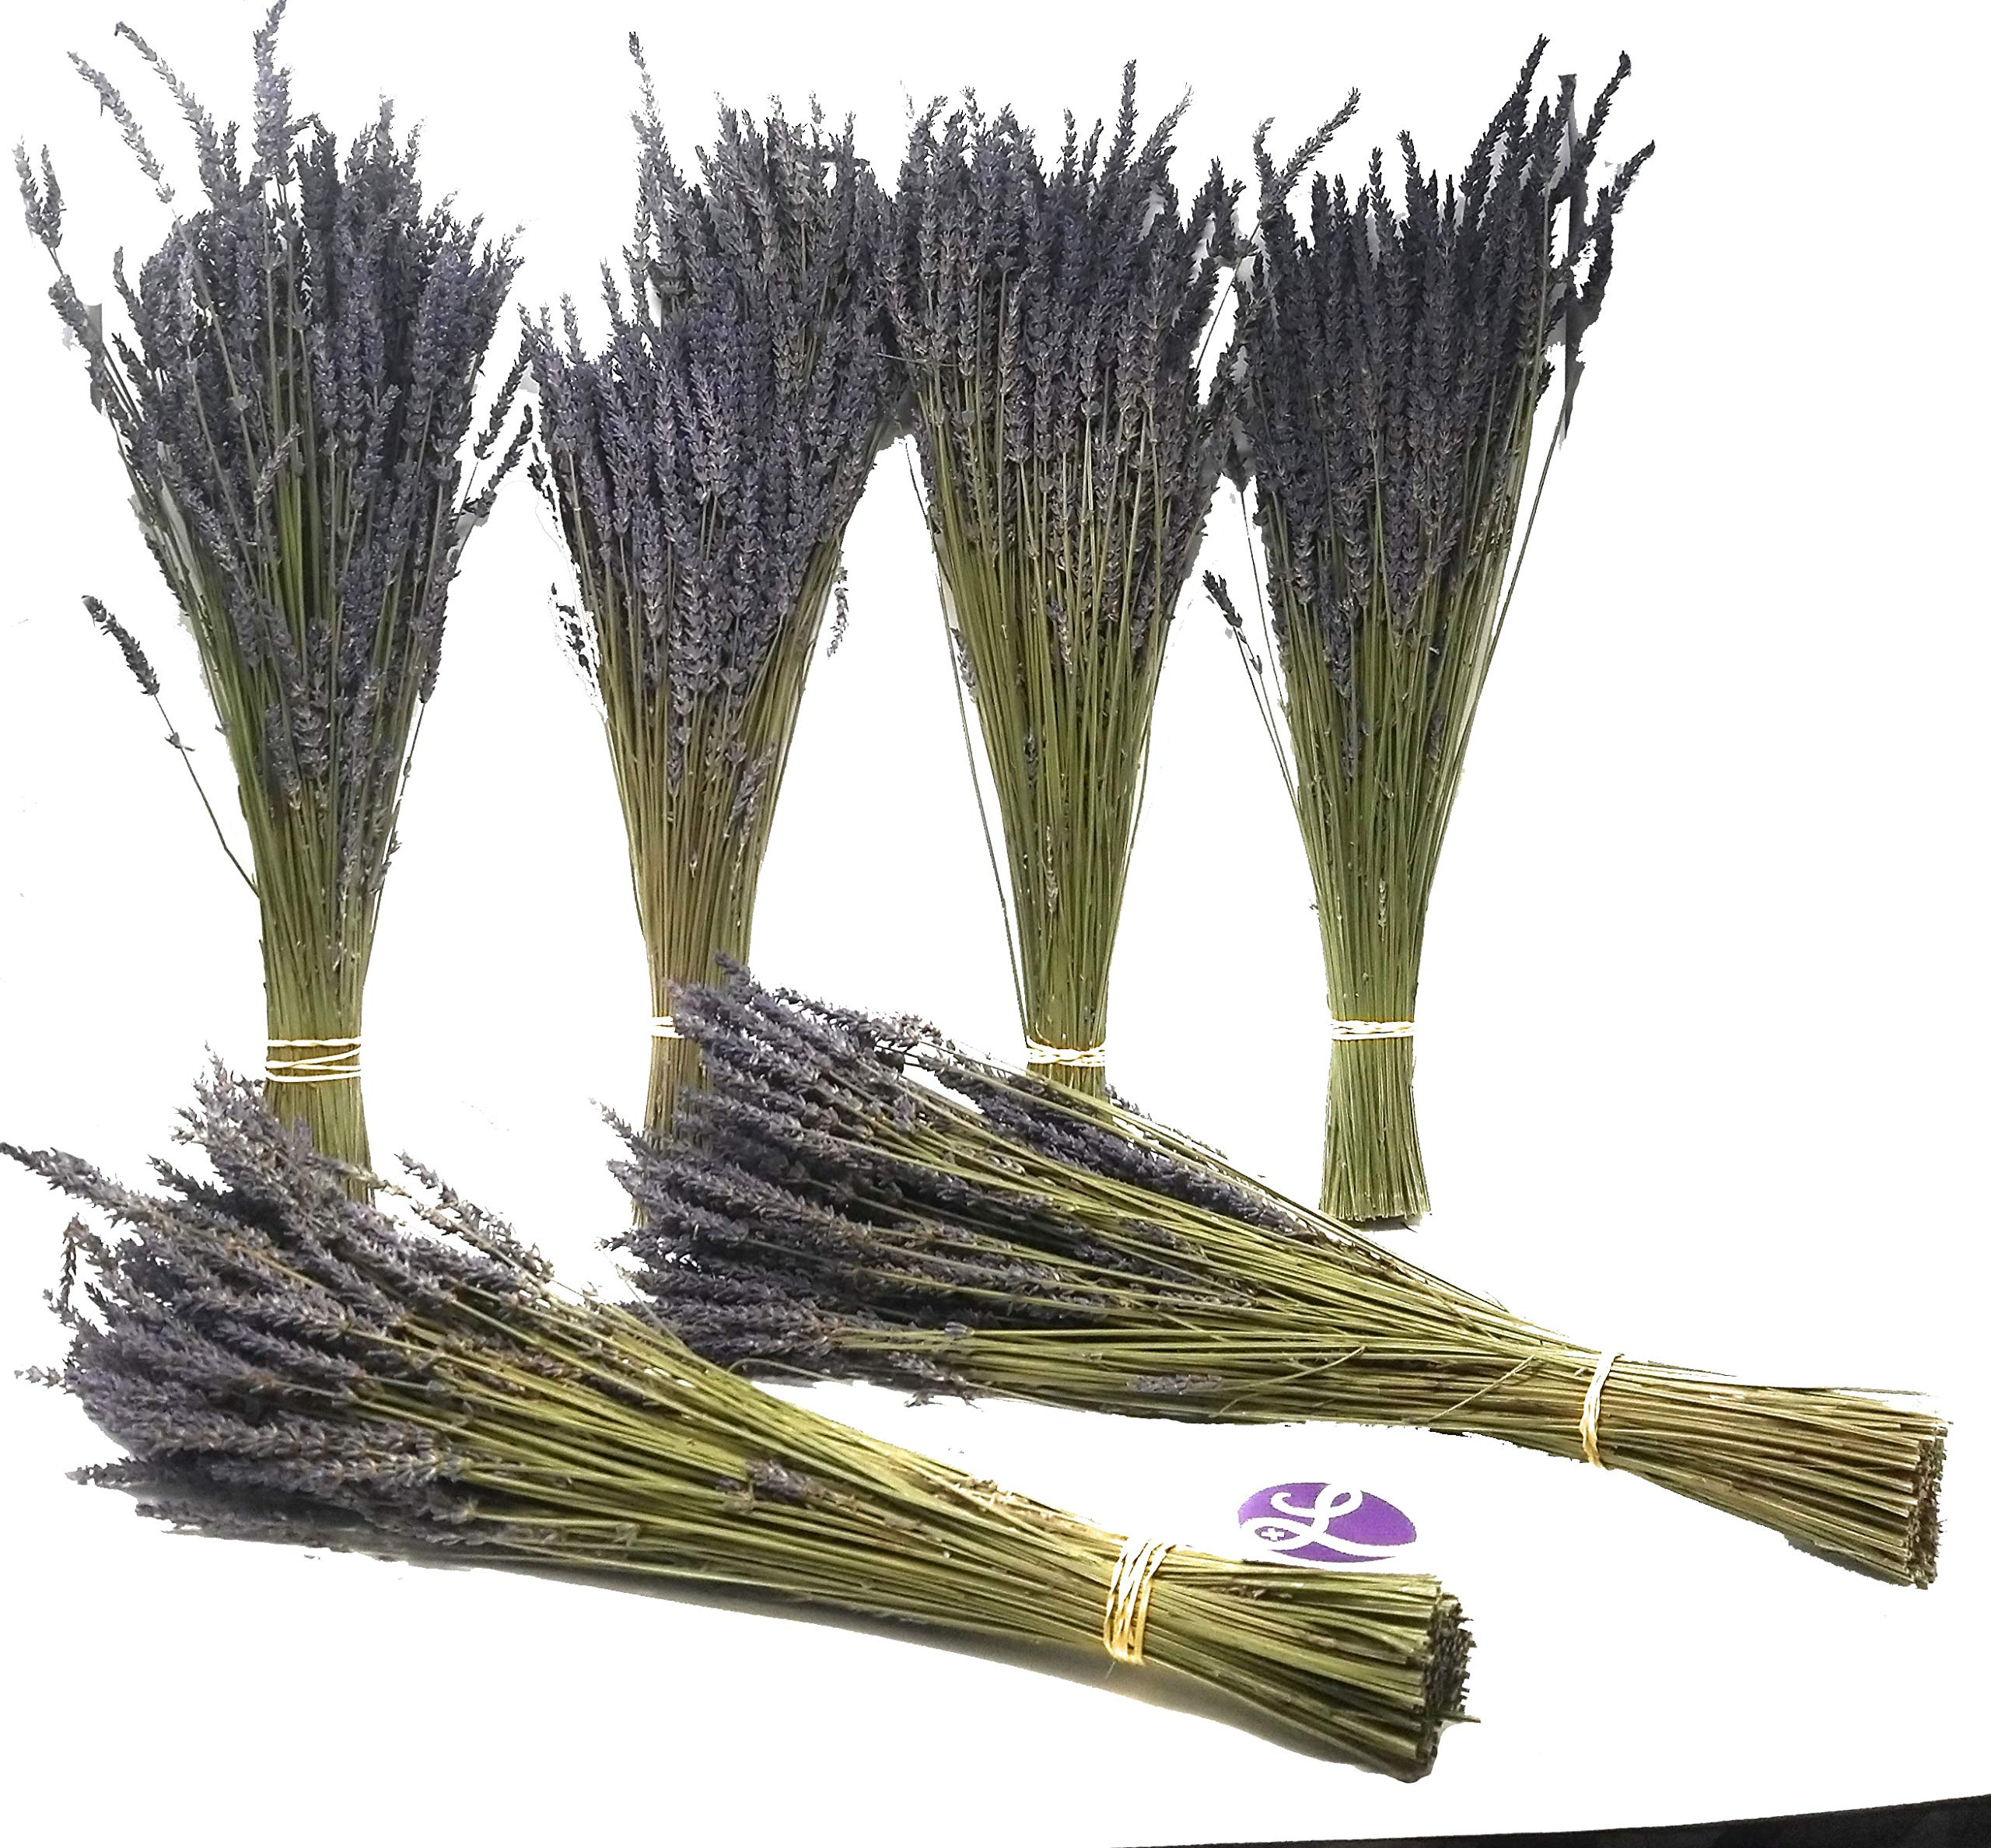 Findlavender - Lavender Dried Premium Bundles - 22 to 24'' - 130 to 150 Stems - Can Be Used for Any Ocassion - Perfect for your wedding! - 6 Bundles by Findlavender (Image #1)